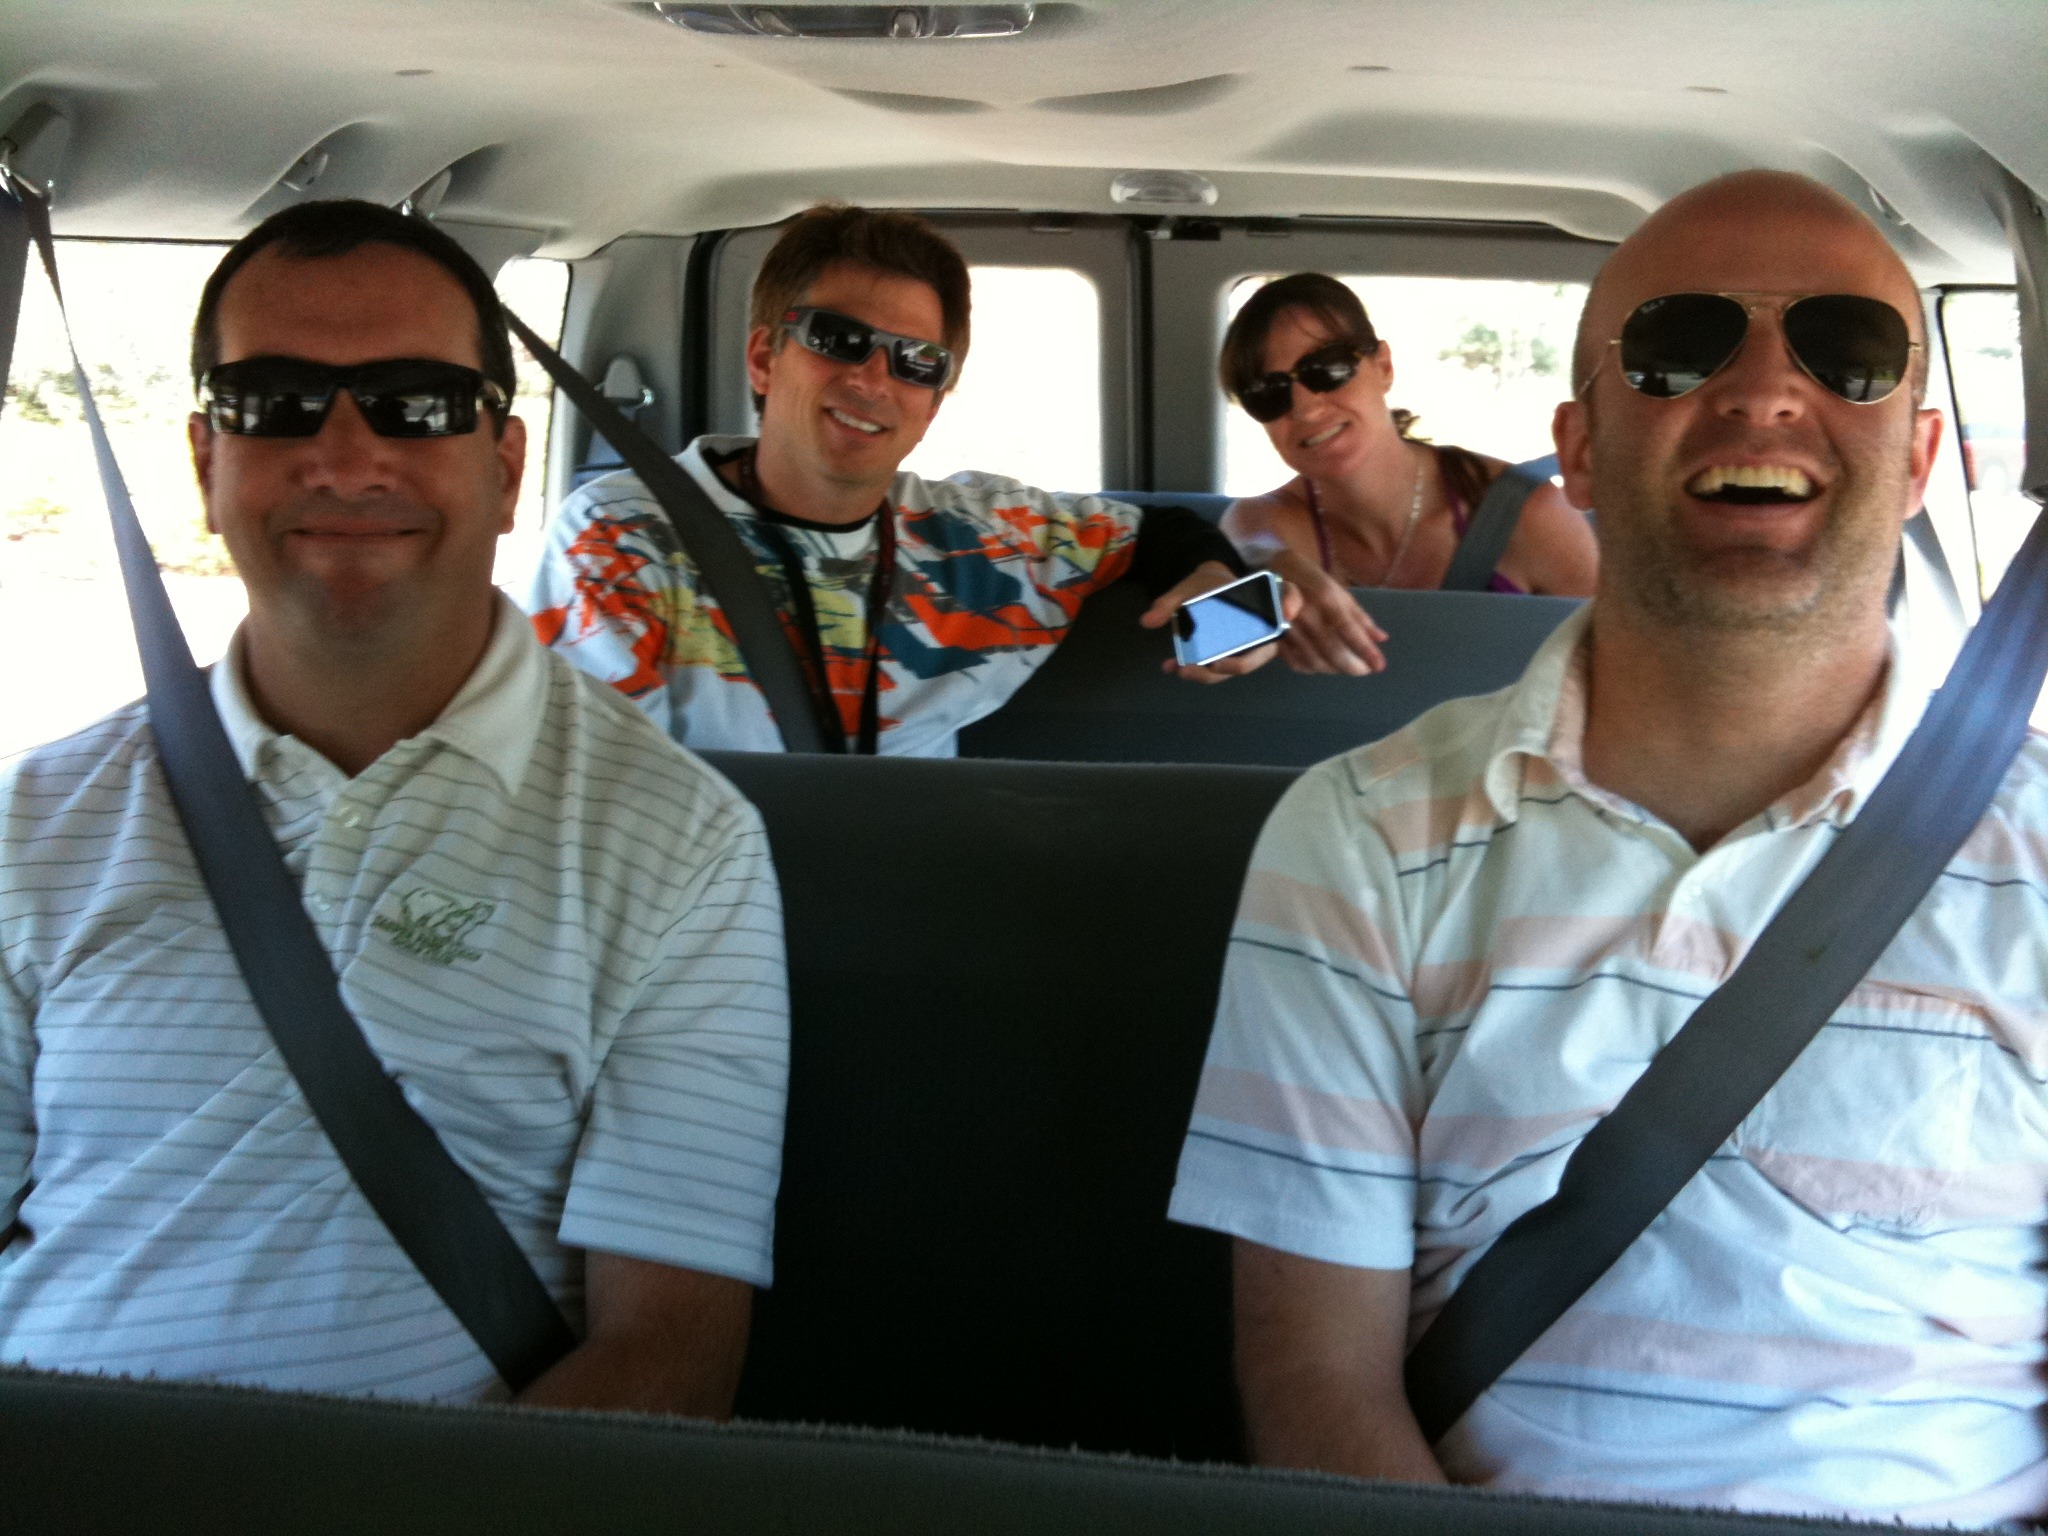 On our way to the web mgmt team offsite meeting.